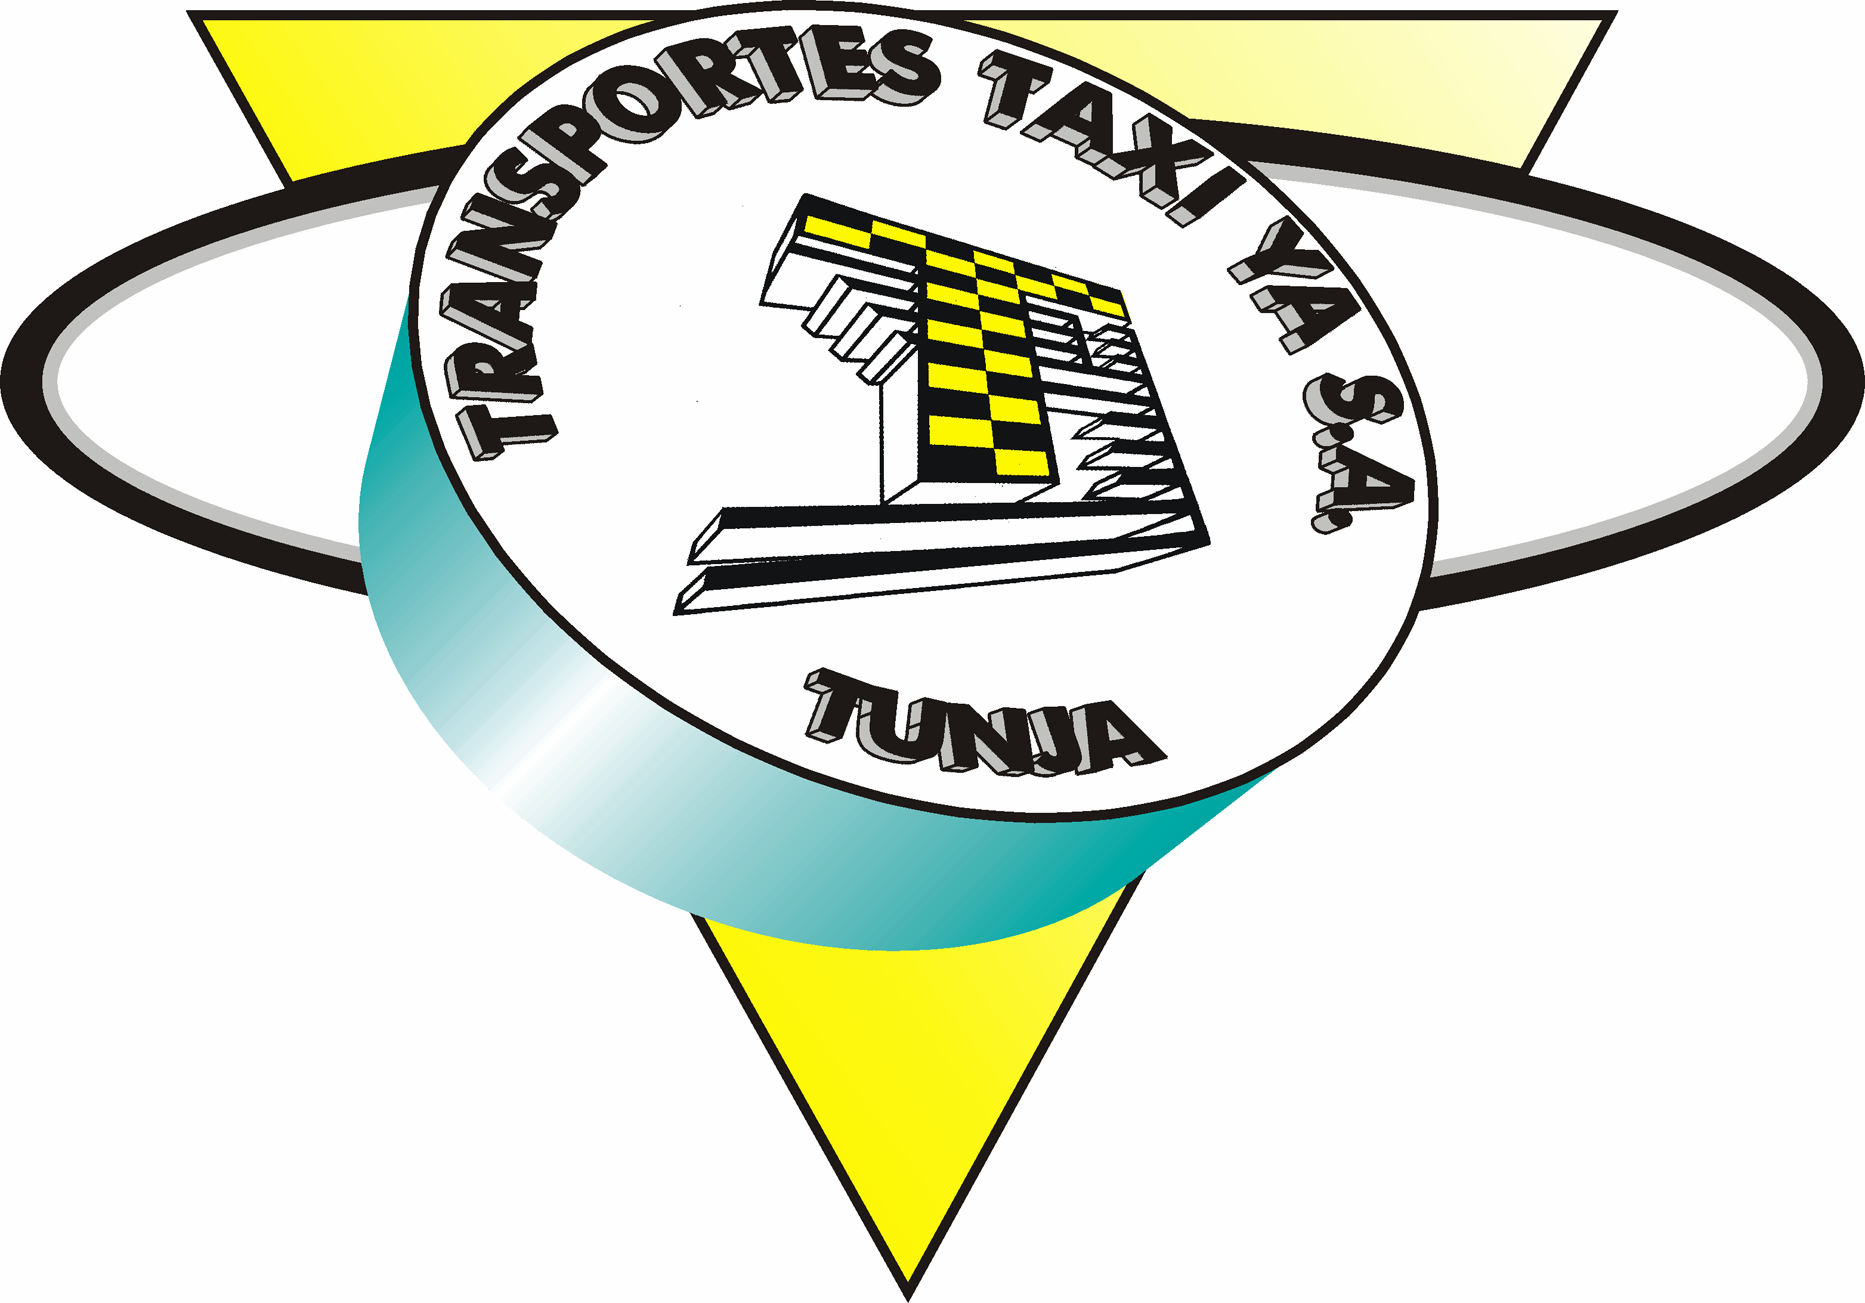 TRANSPORTES TAXI YA S.A.